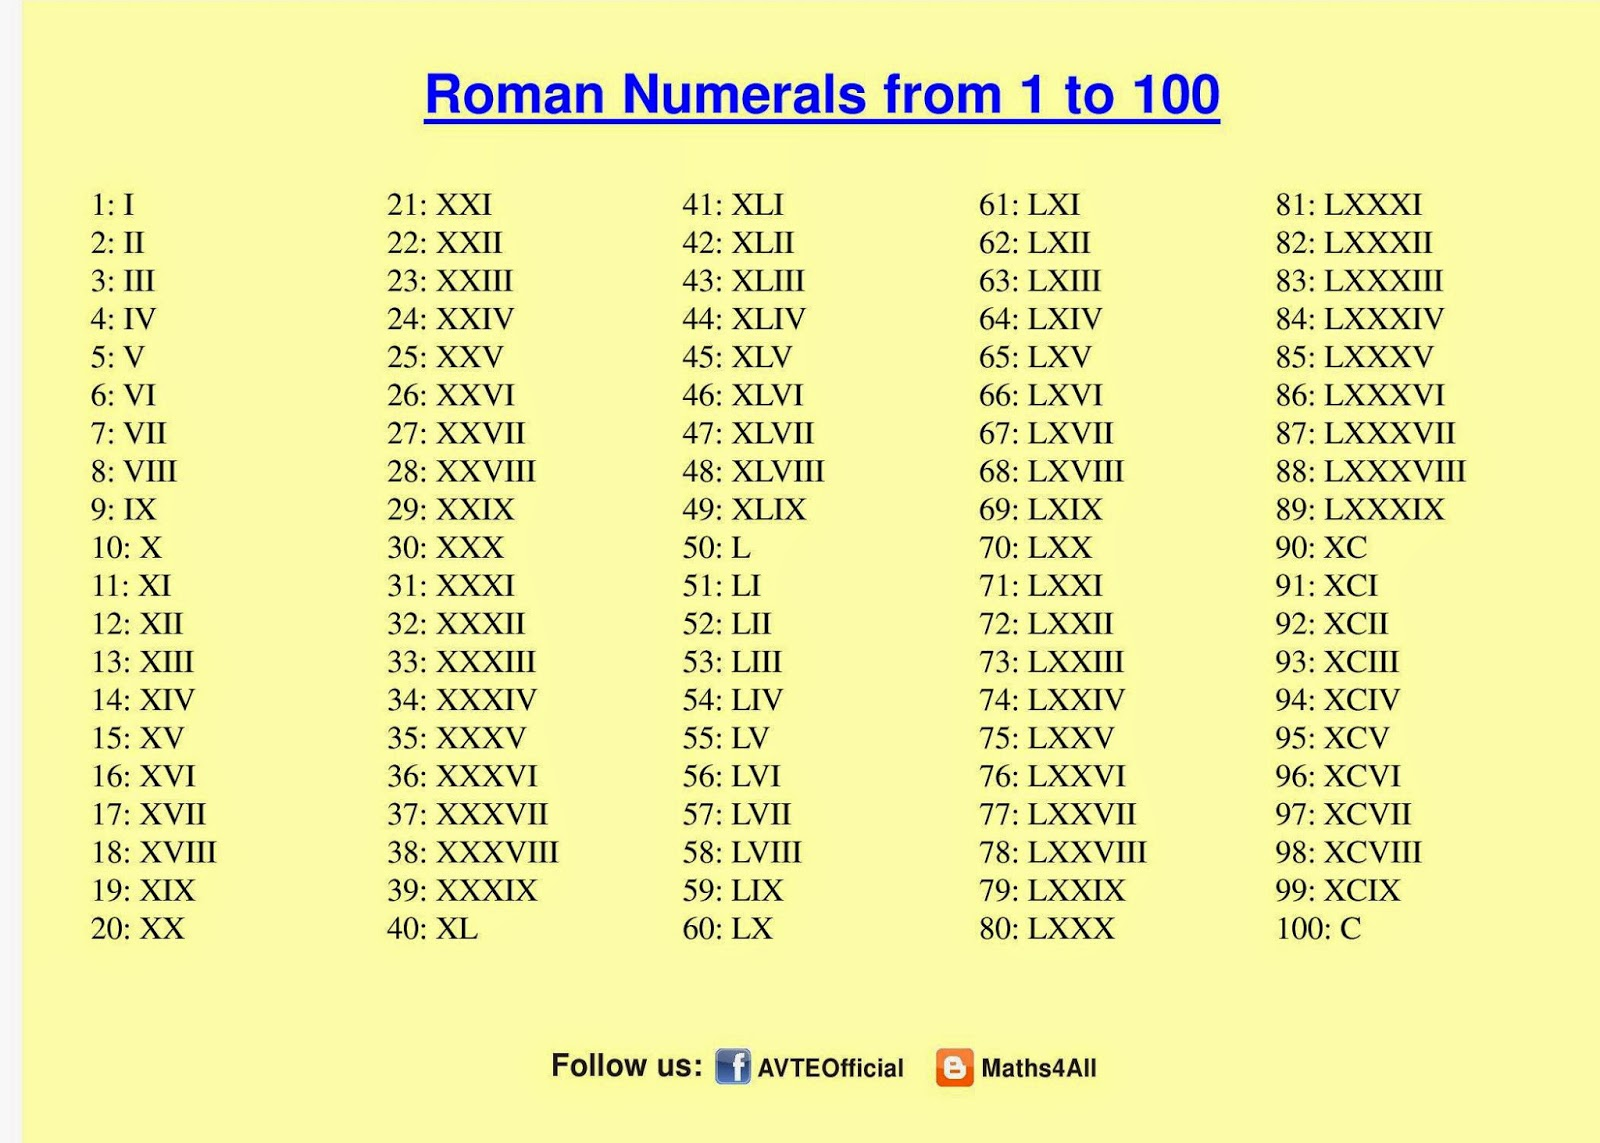 Maths4all: ROMAN NUMERALS 1 TO 100